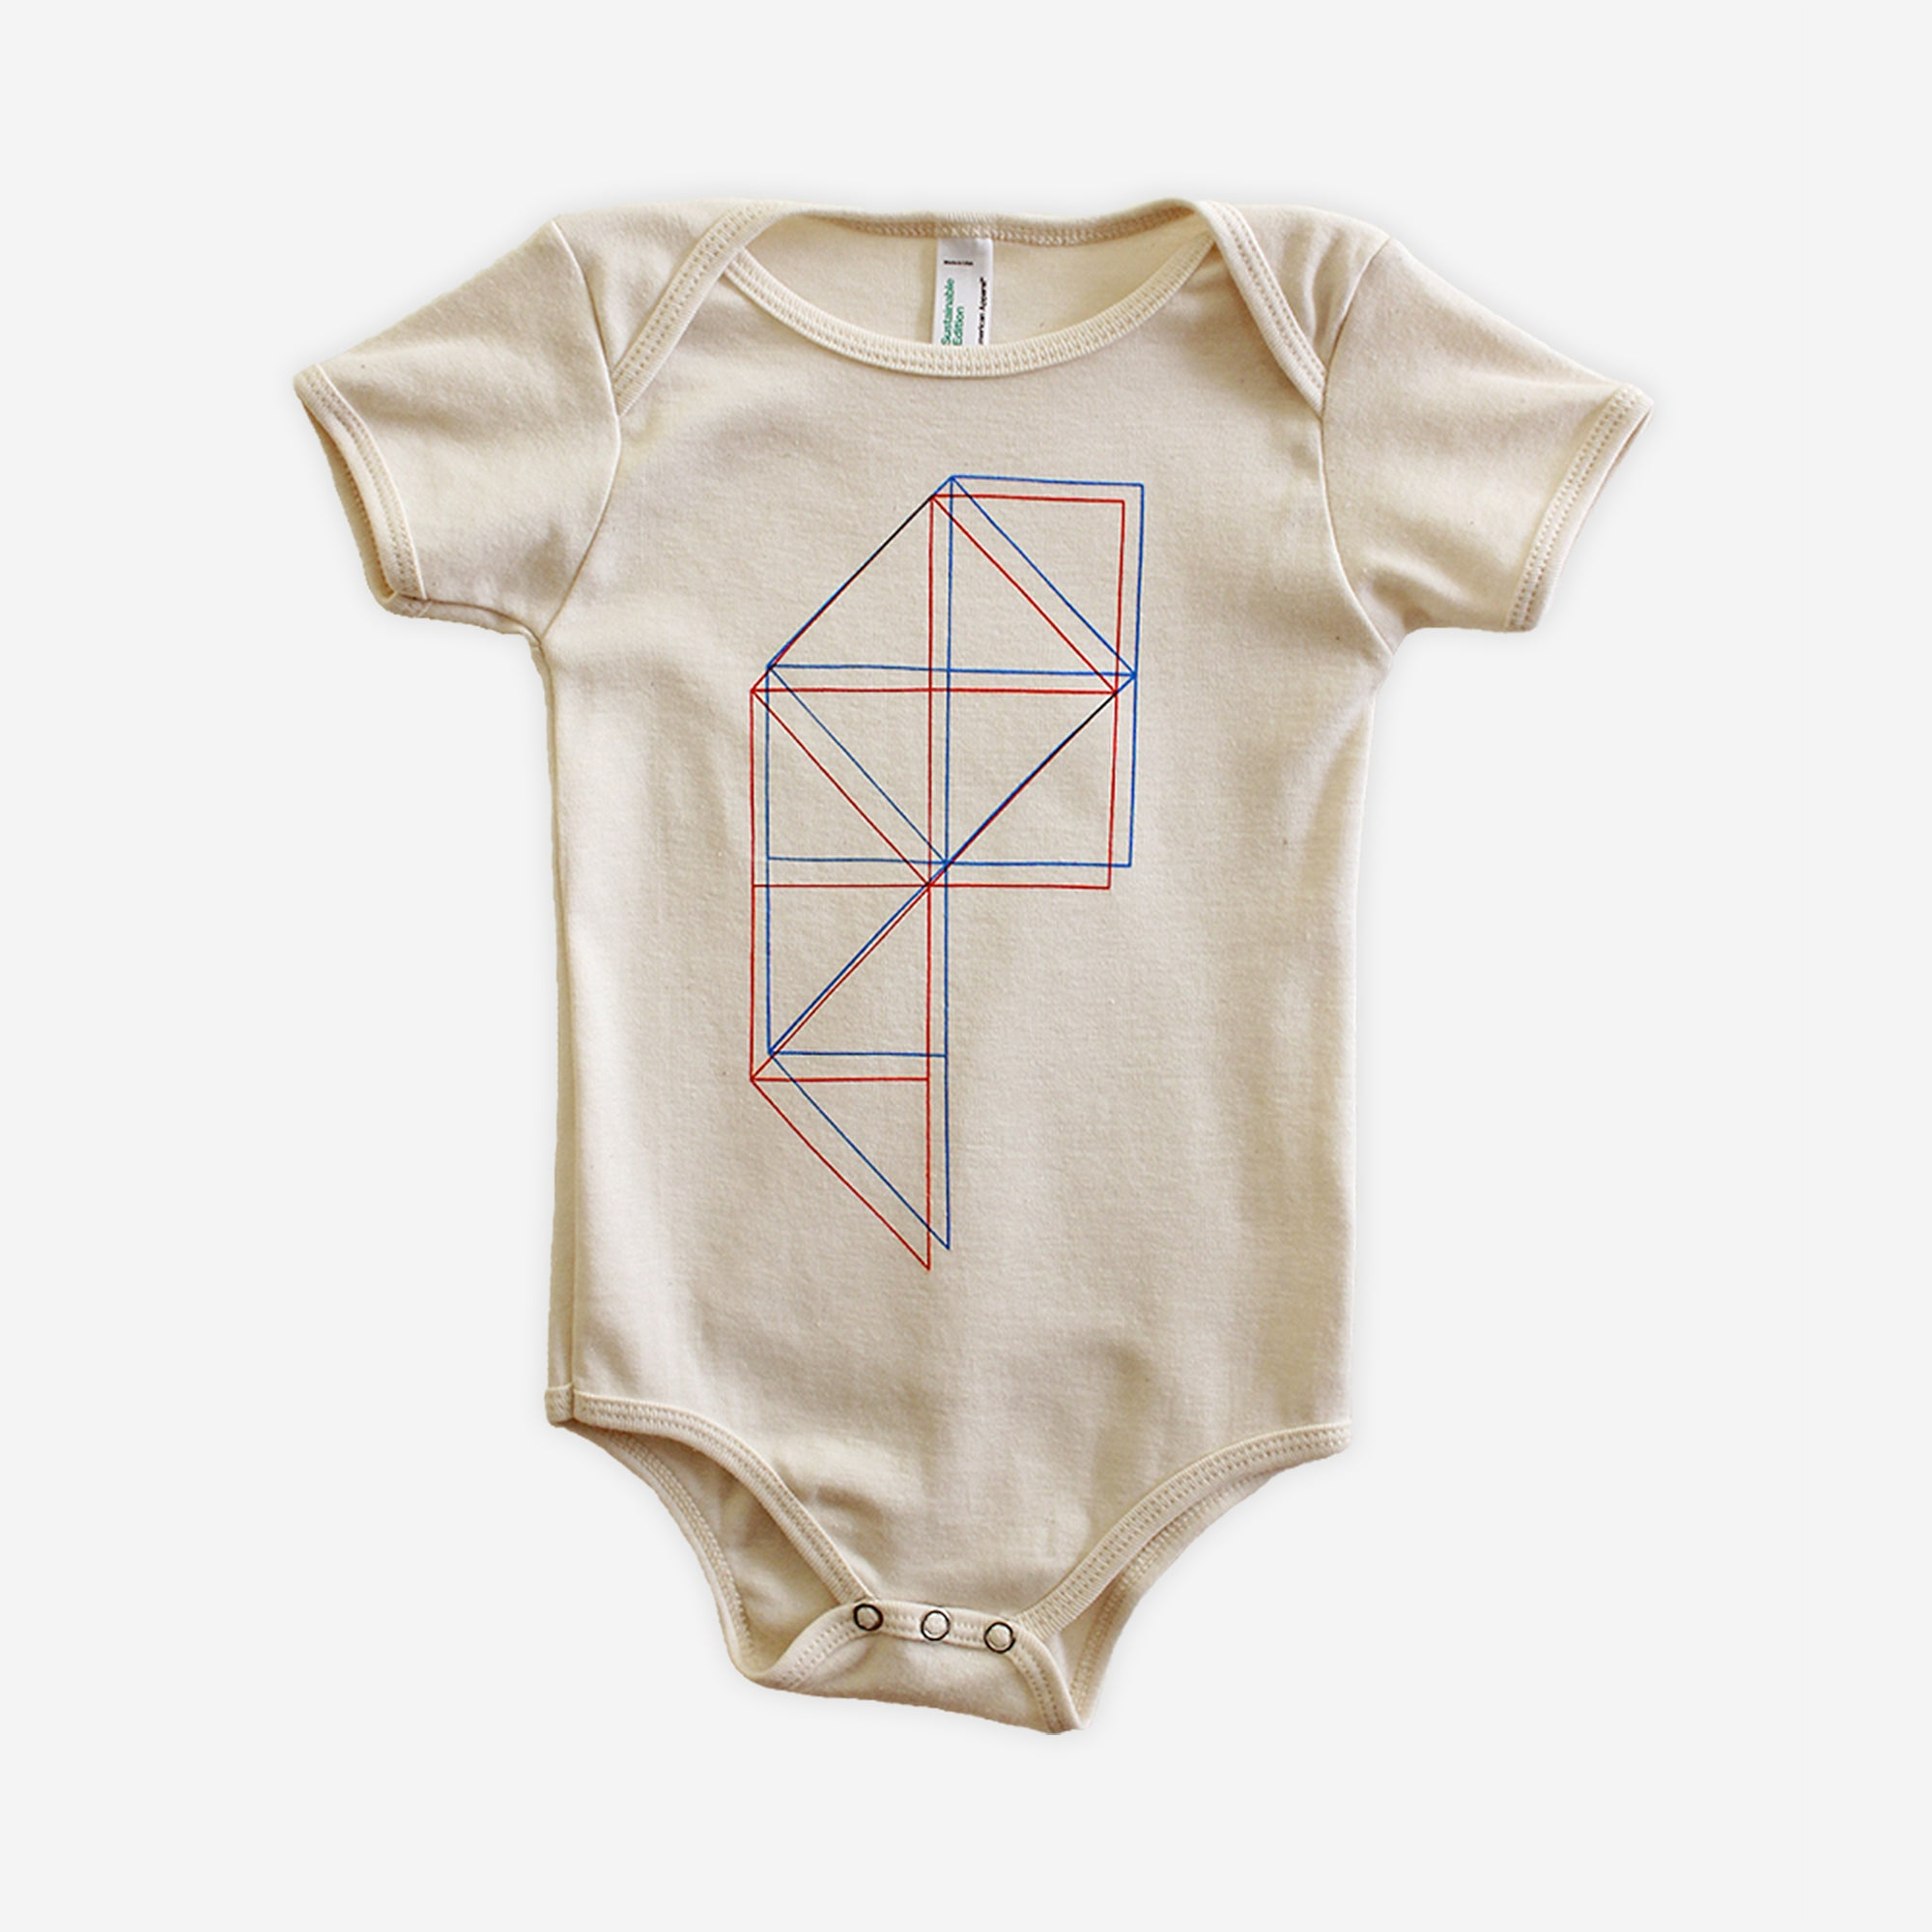 Image of Geometrie 001 - one-piece